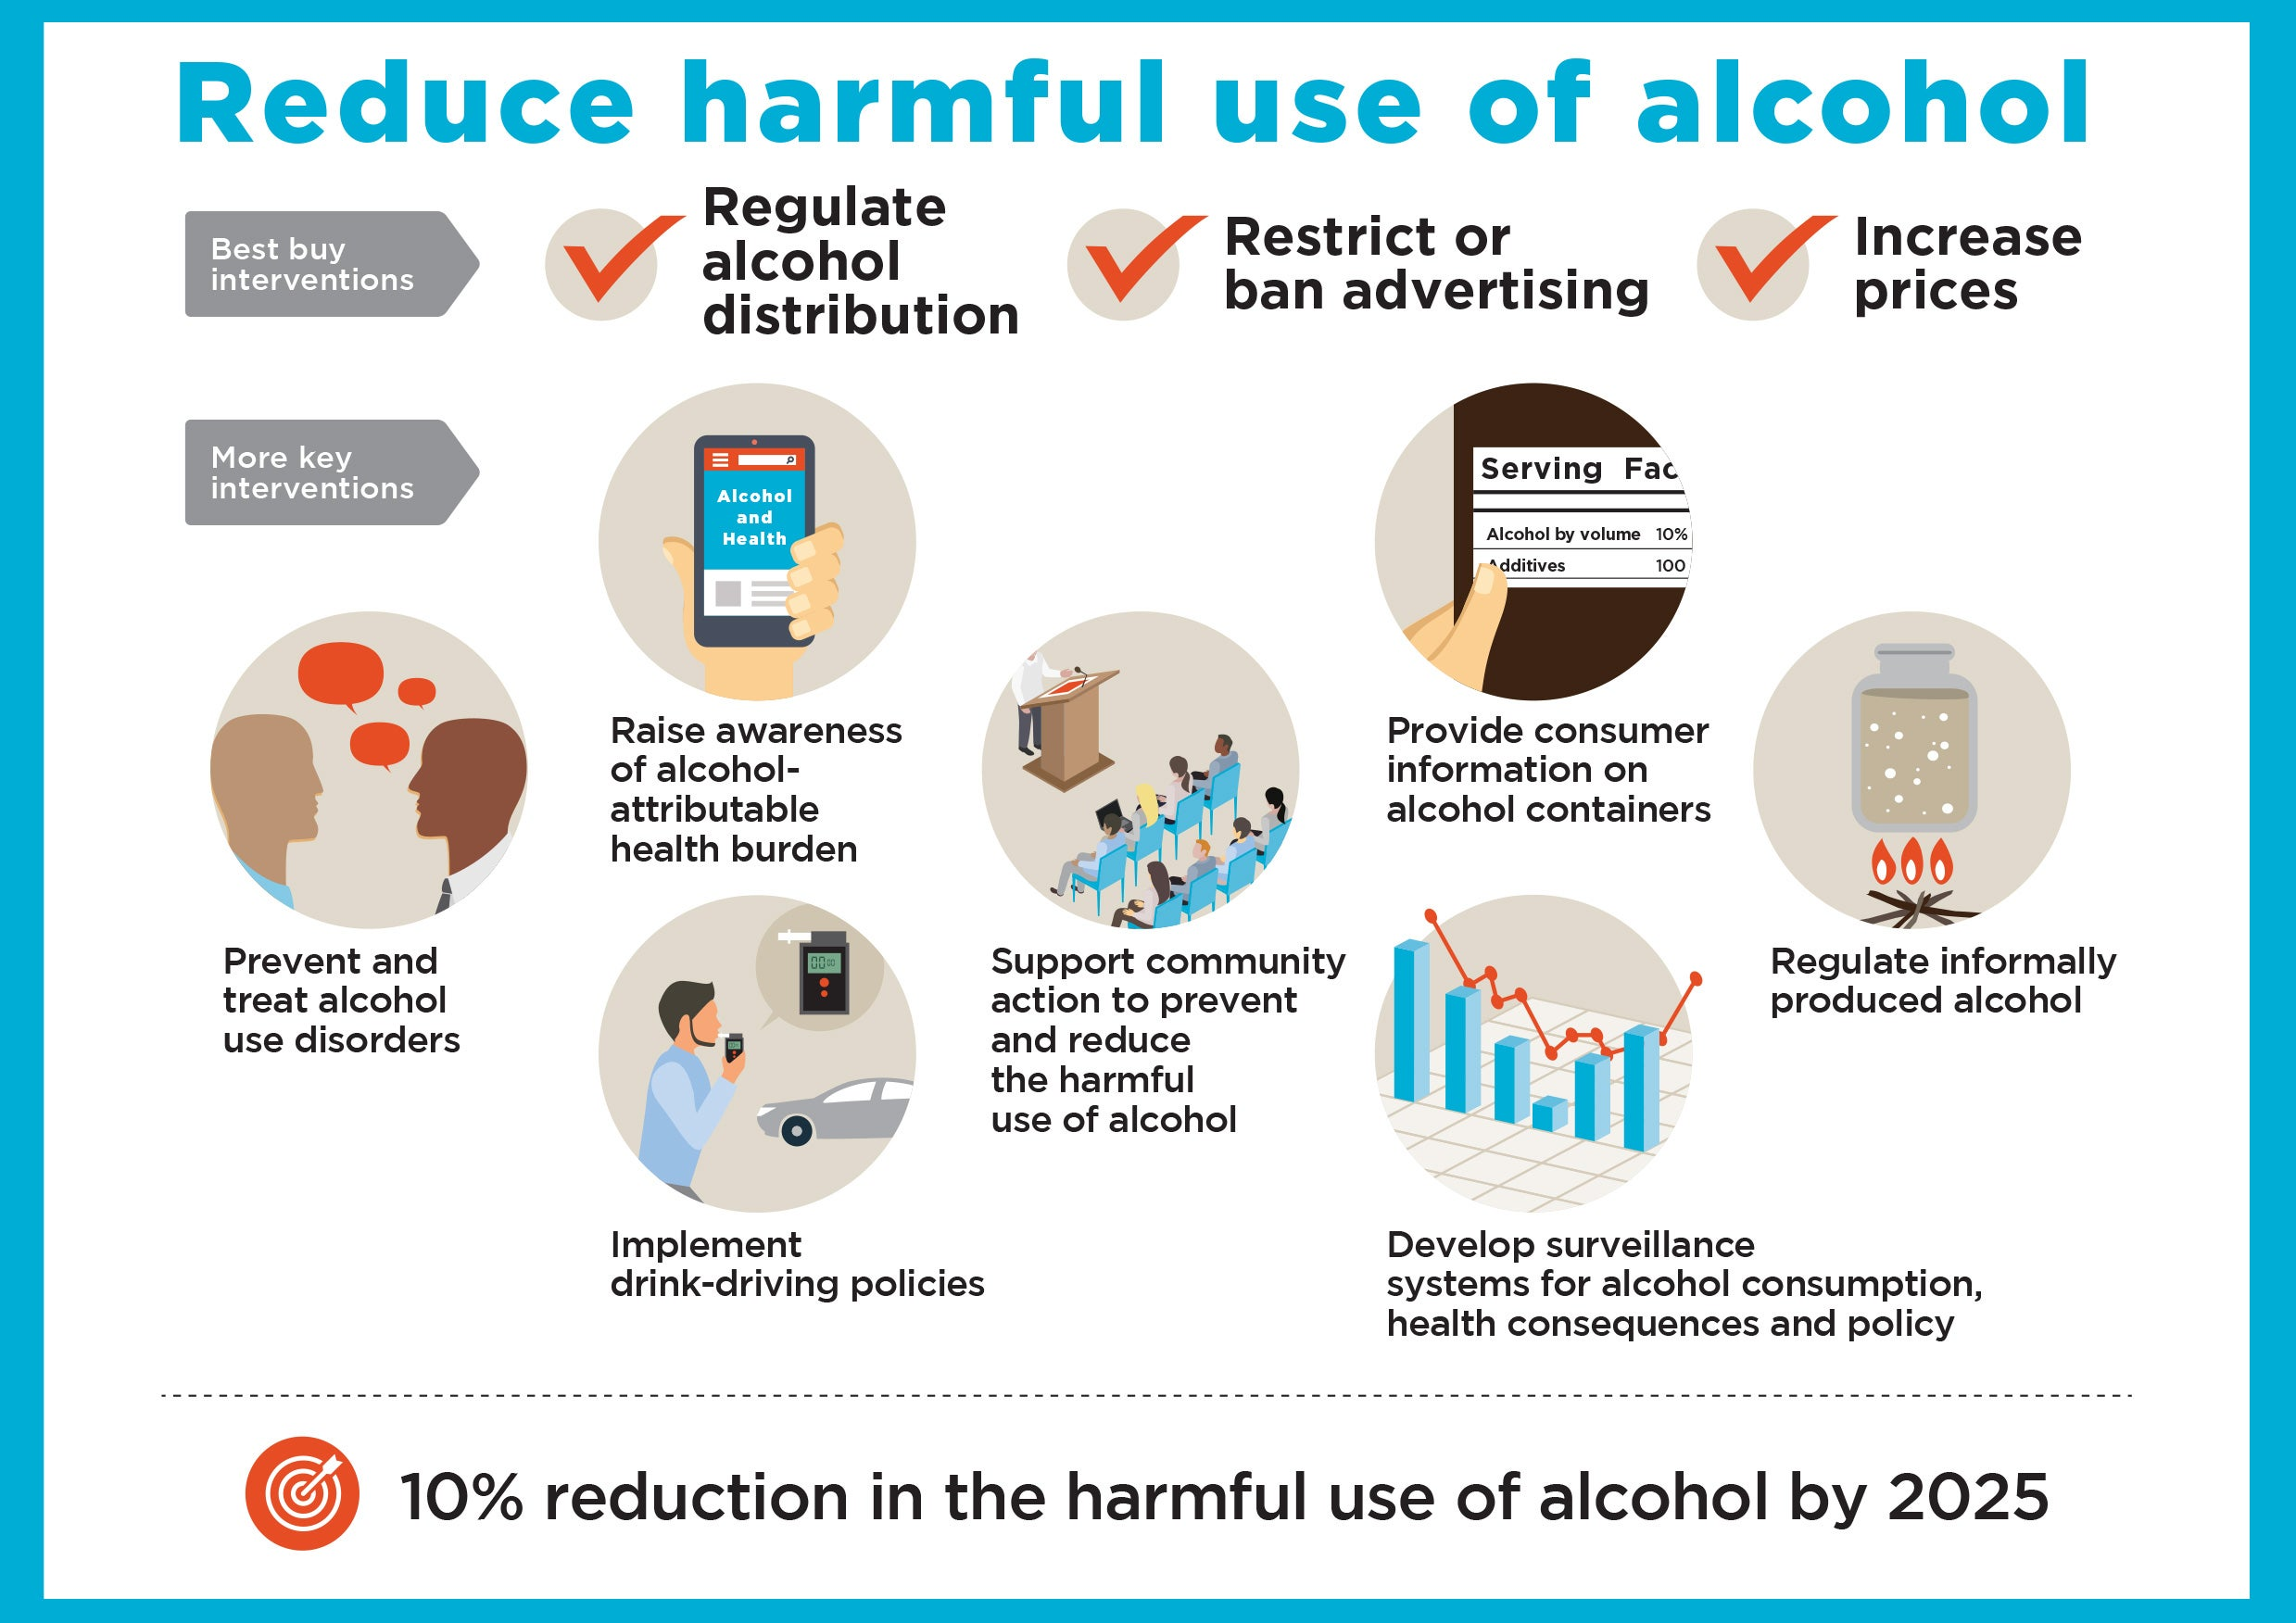 Reduce harmful use of alcohol